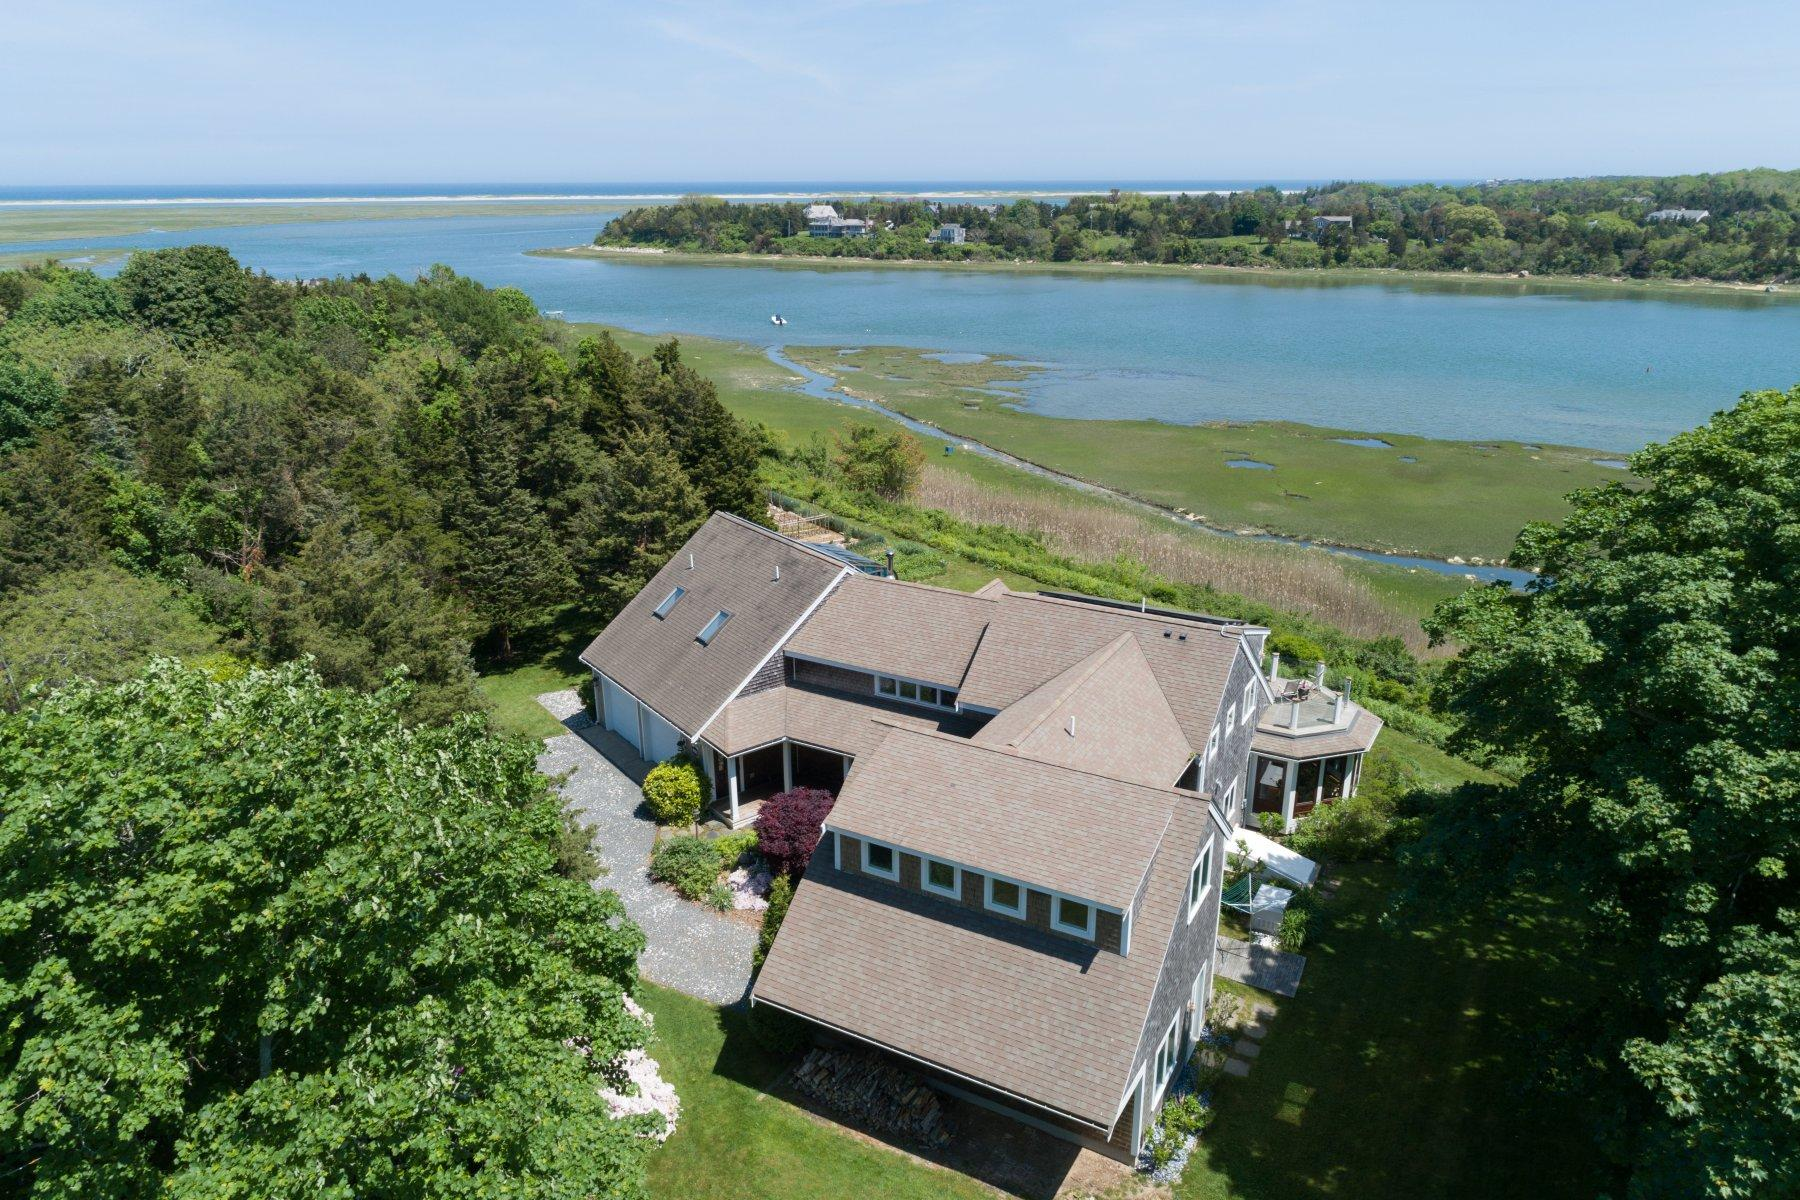 Single Family Homes for Sale at 385 Mary Chase Road, Eastham, MA 385 Mary Chase Road Eastham, Massachusetts 02642 United States